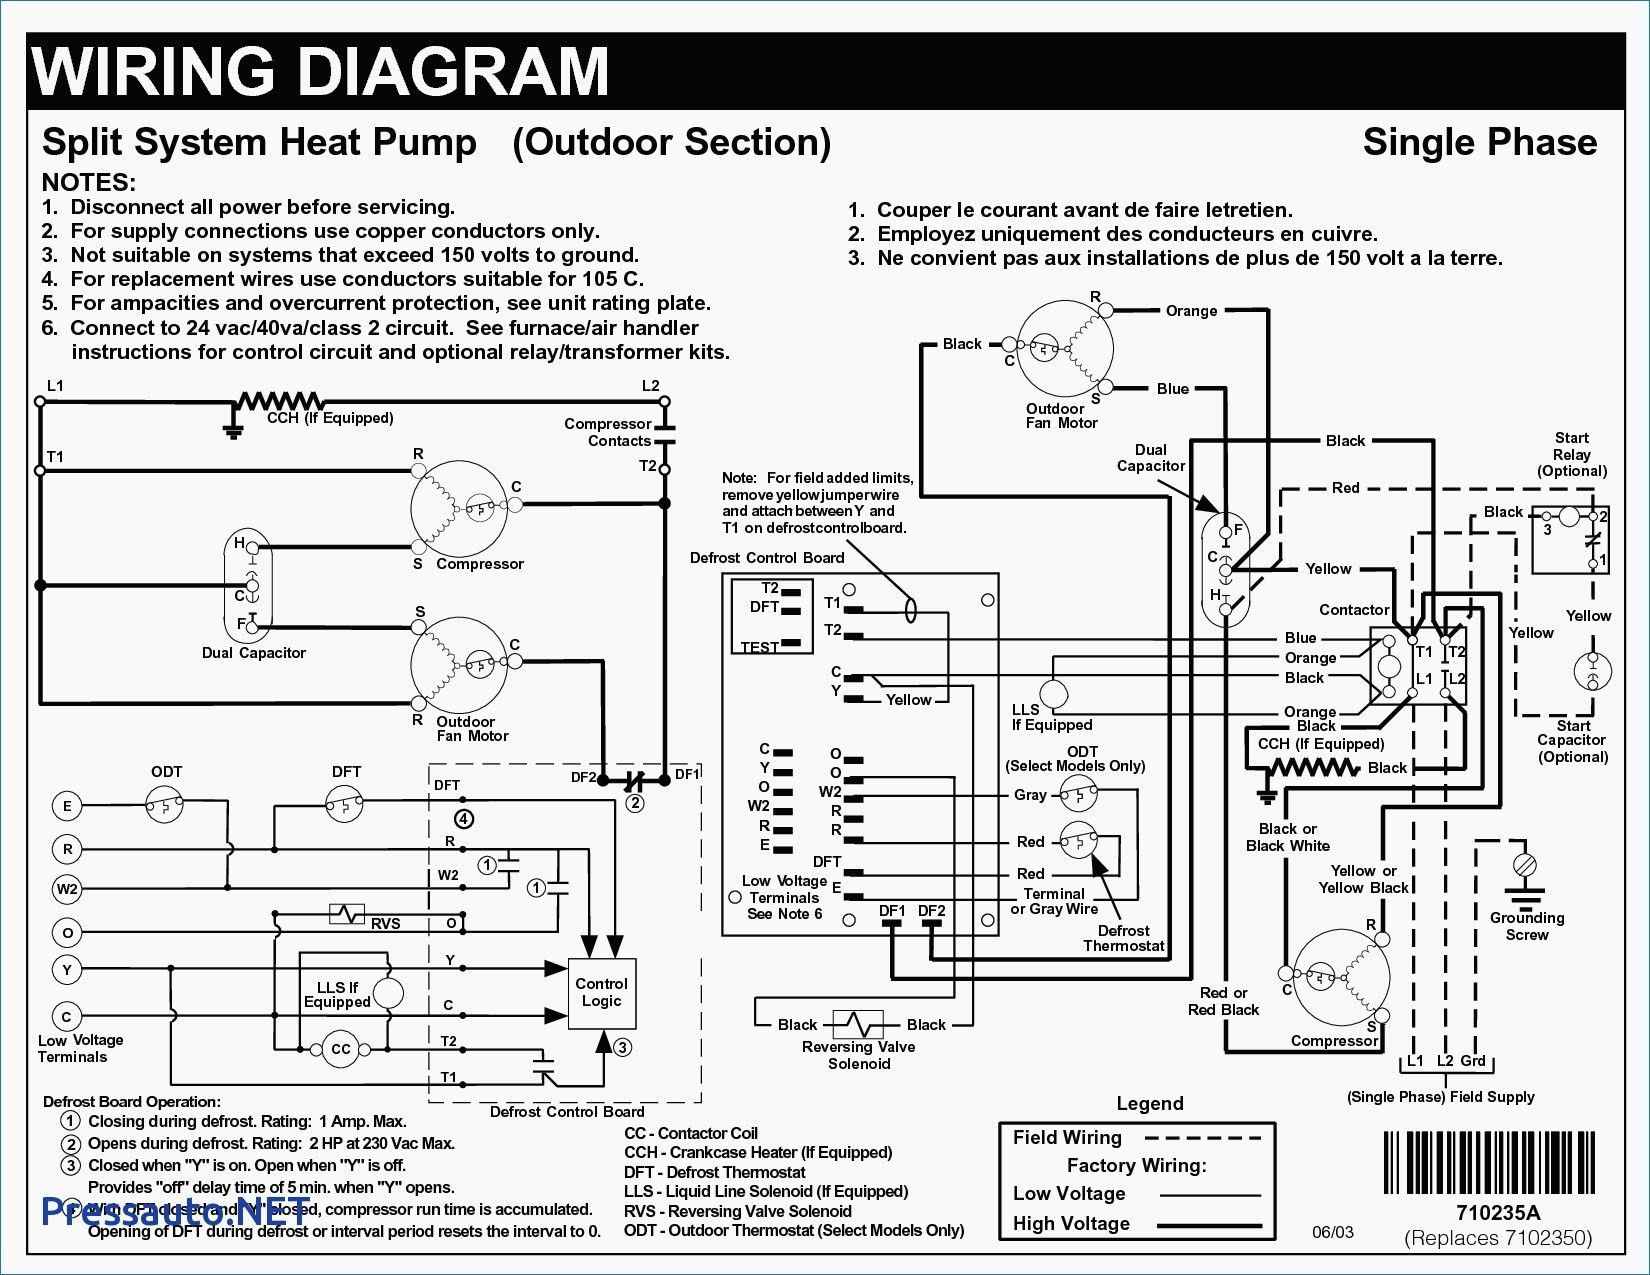 Unique Air Conditioning Split Unit Wiring Diagram Thermostat Wiring House Wiring Heat Pump